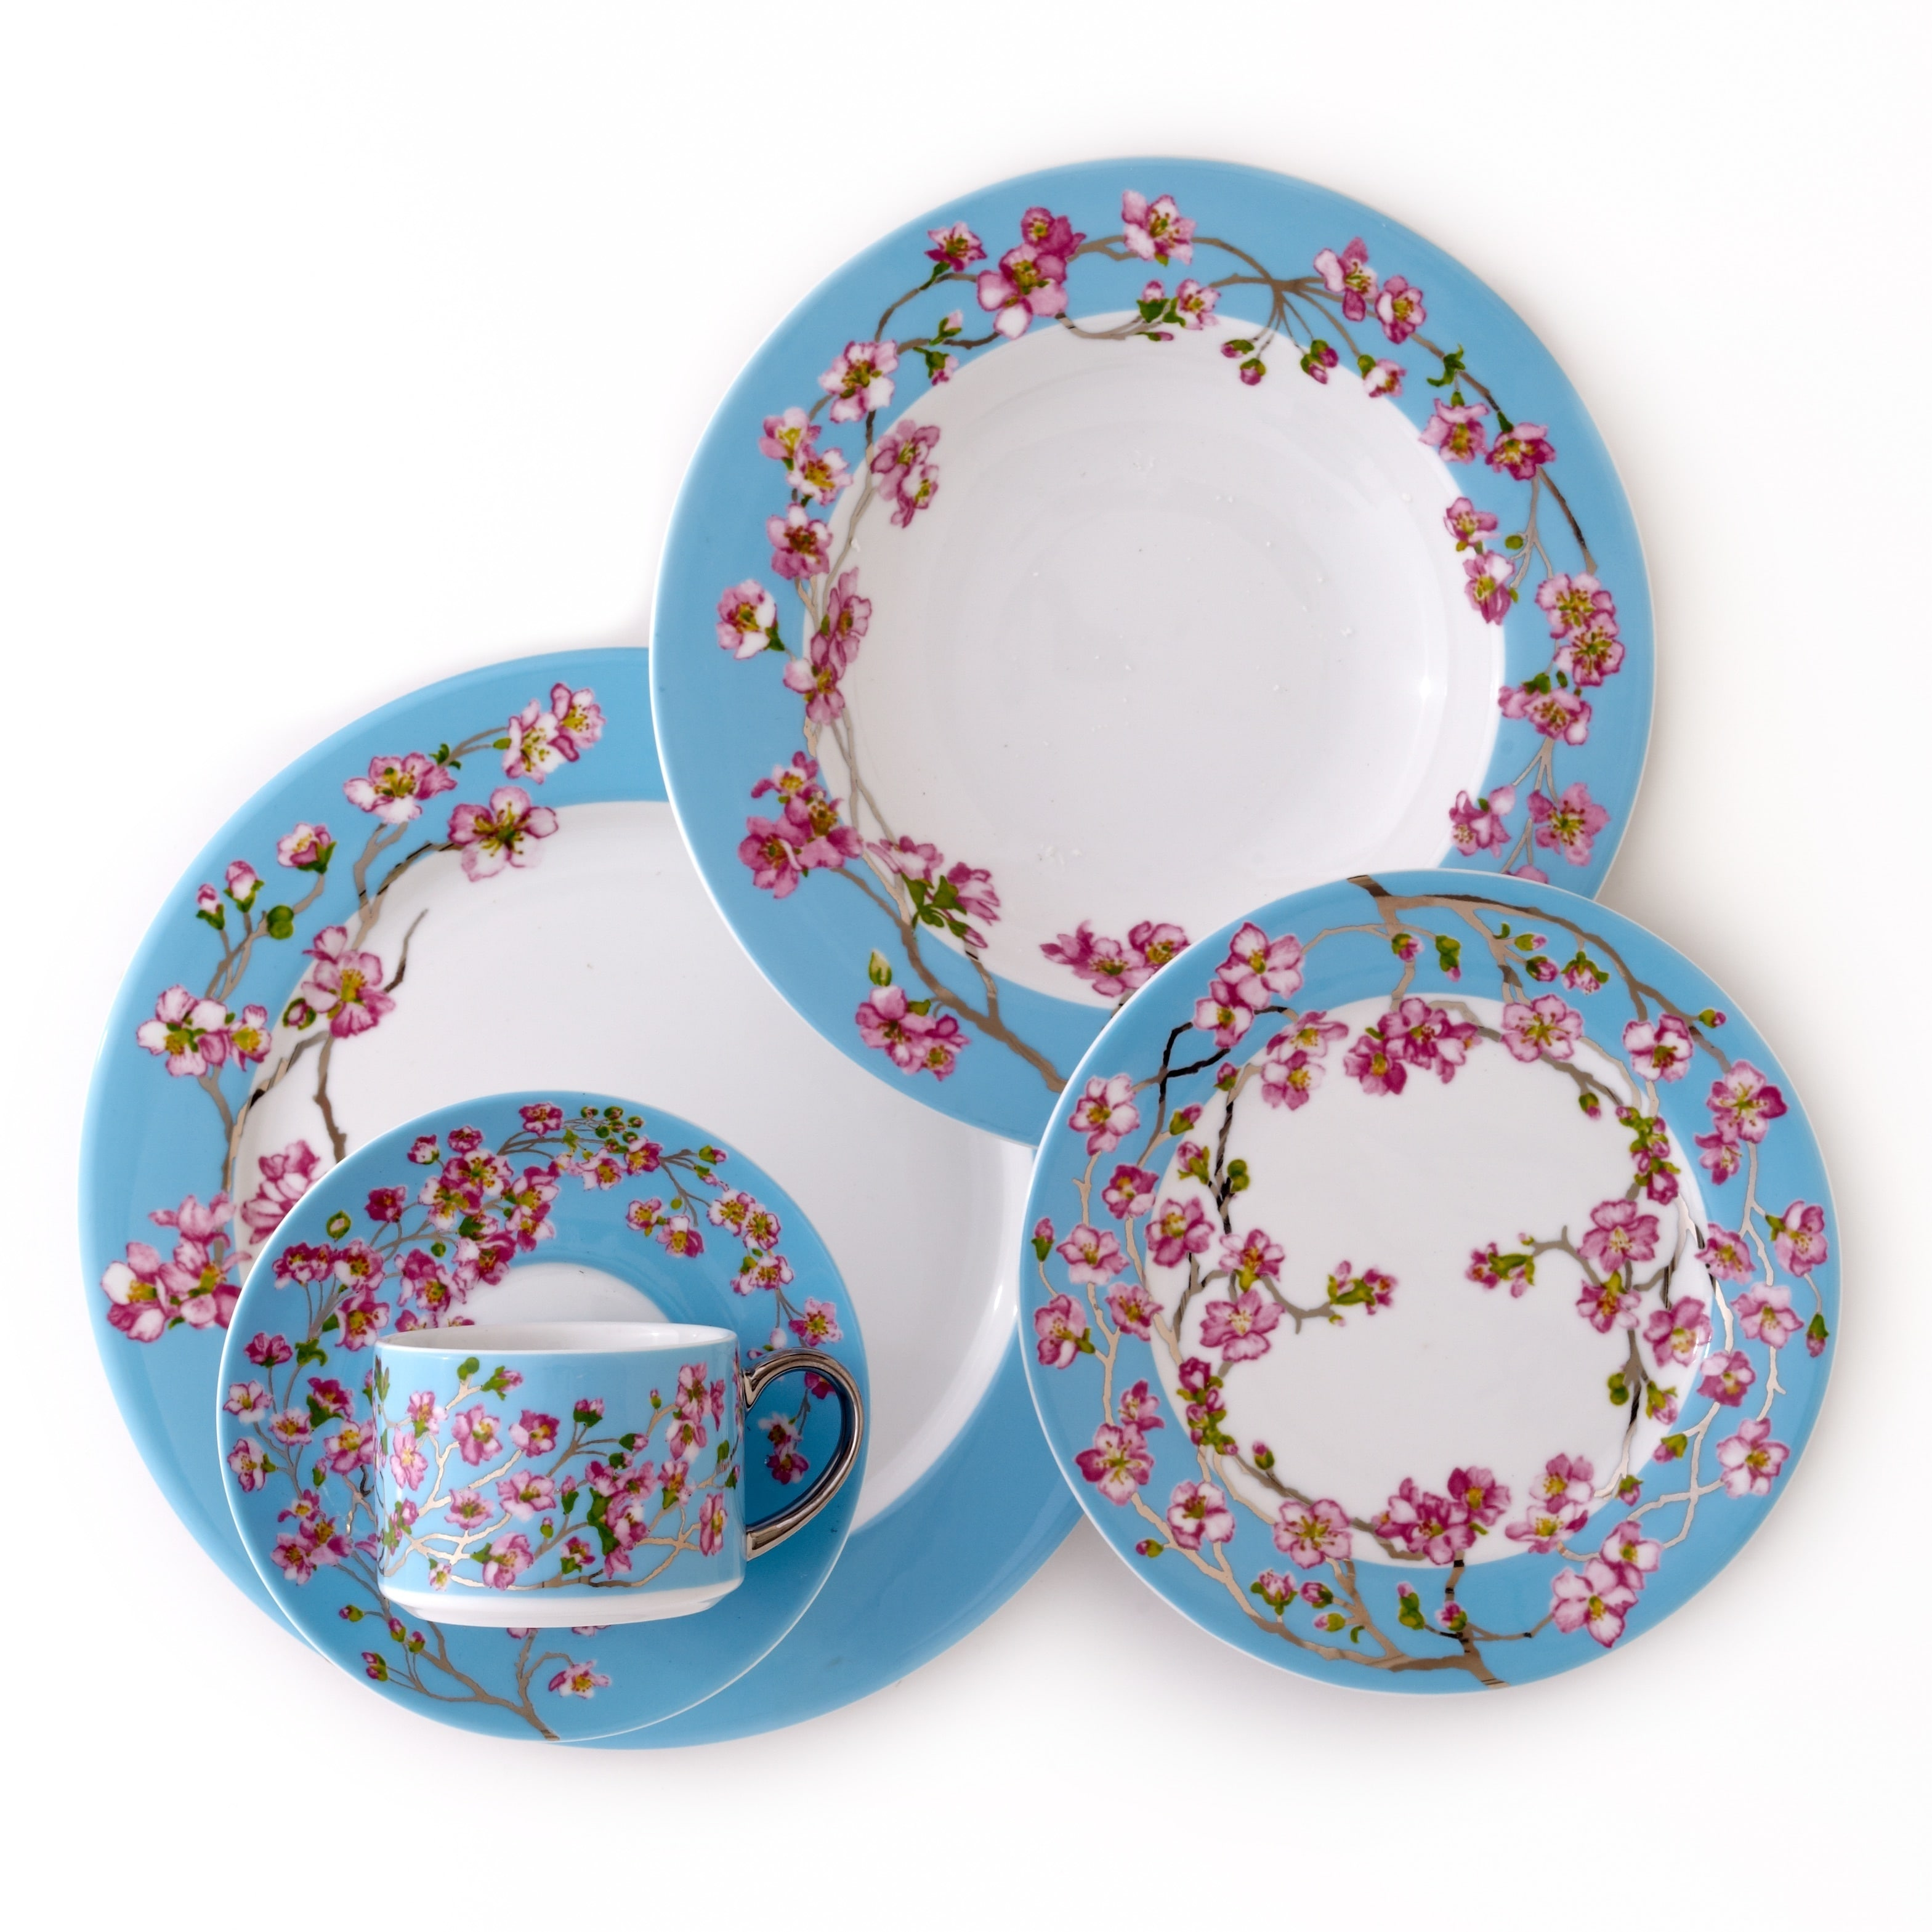 CRU by Darbie Angell Madison 5 Piece Place Setting